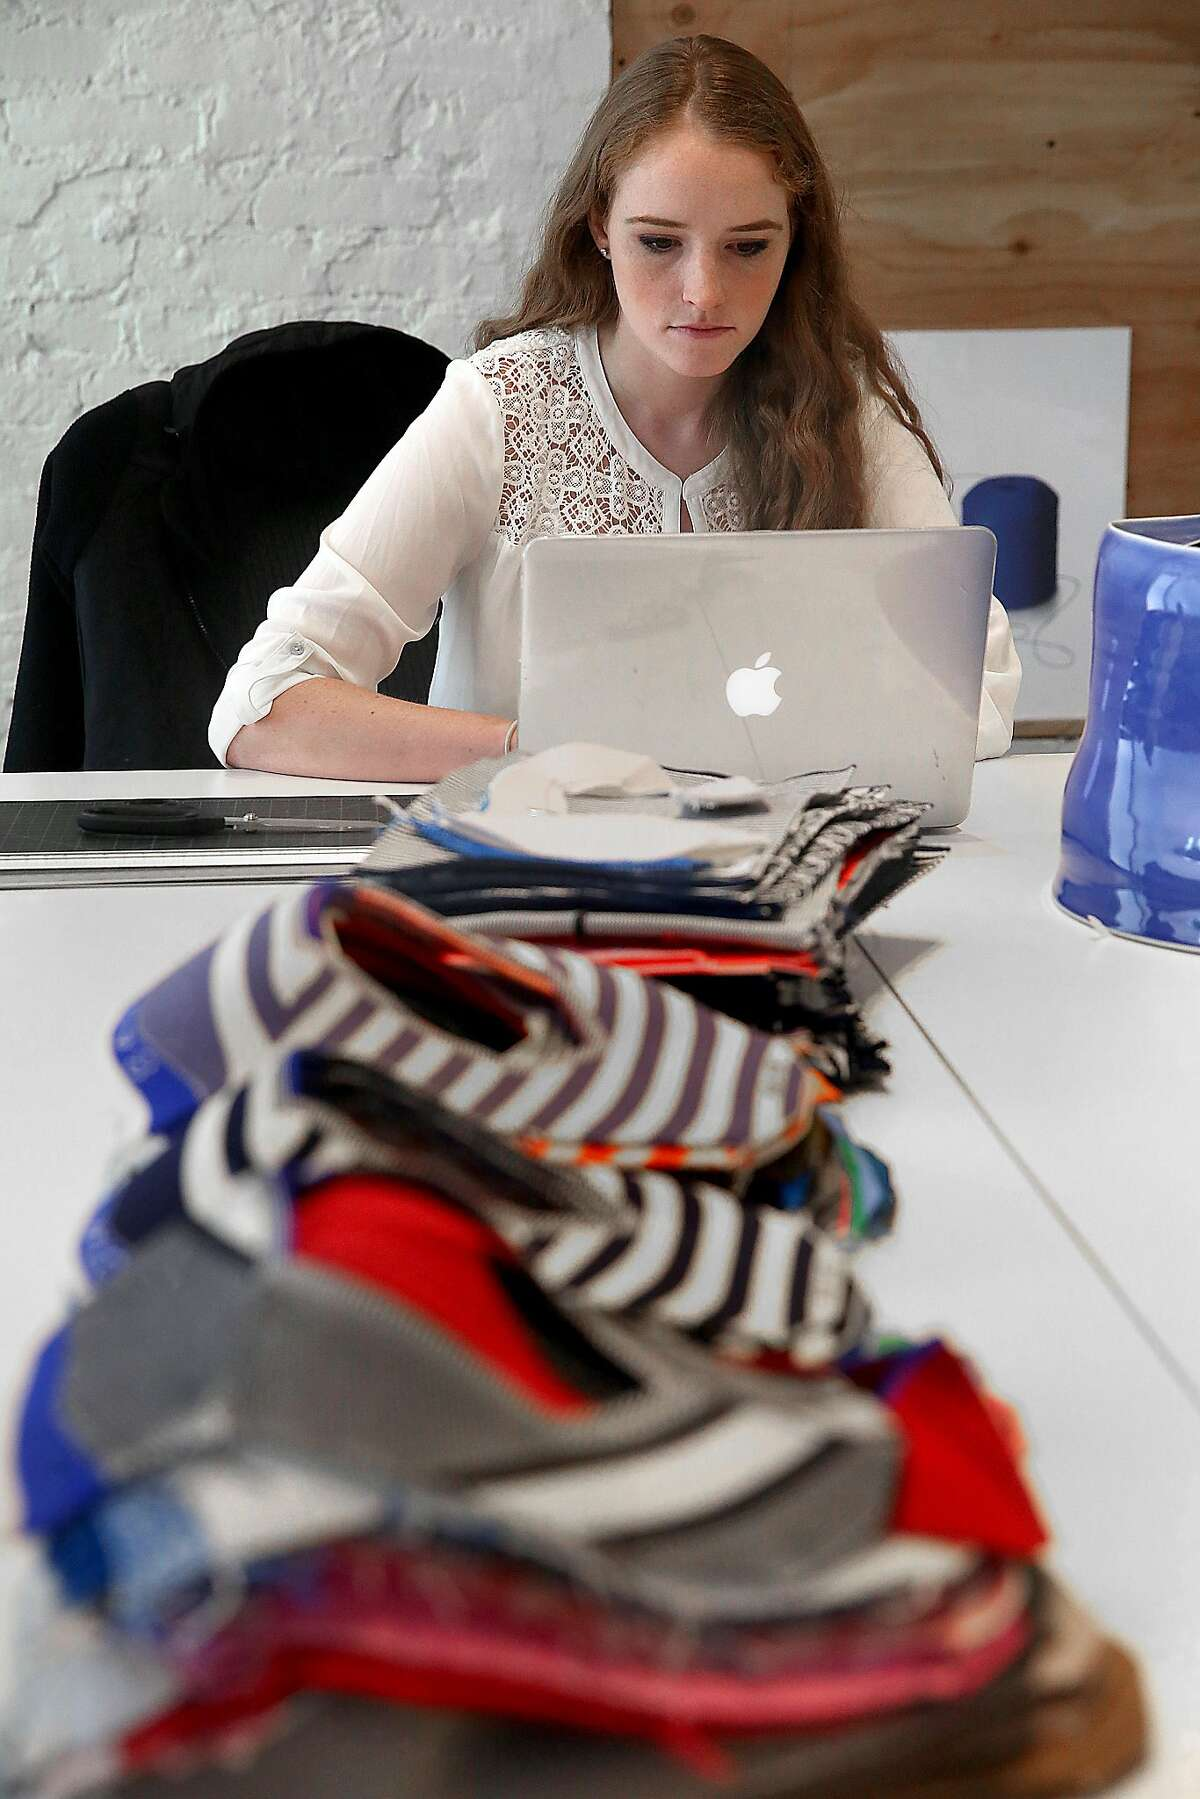 Graphic designer Ashlee Rice works at Rothy's, a female shoe brand, on Thursday, July 28, 2016, in San Francisco, Calif.